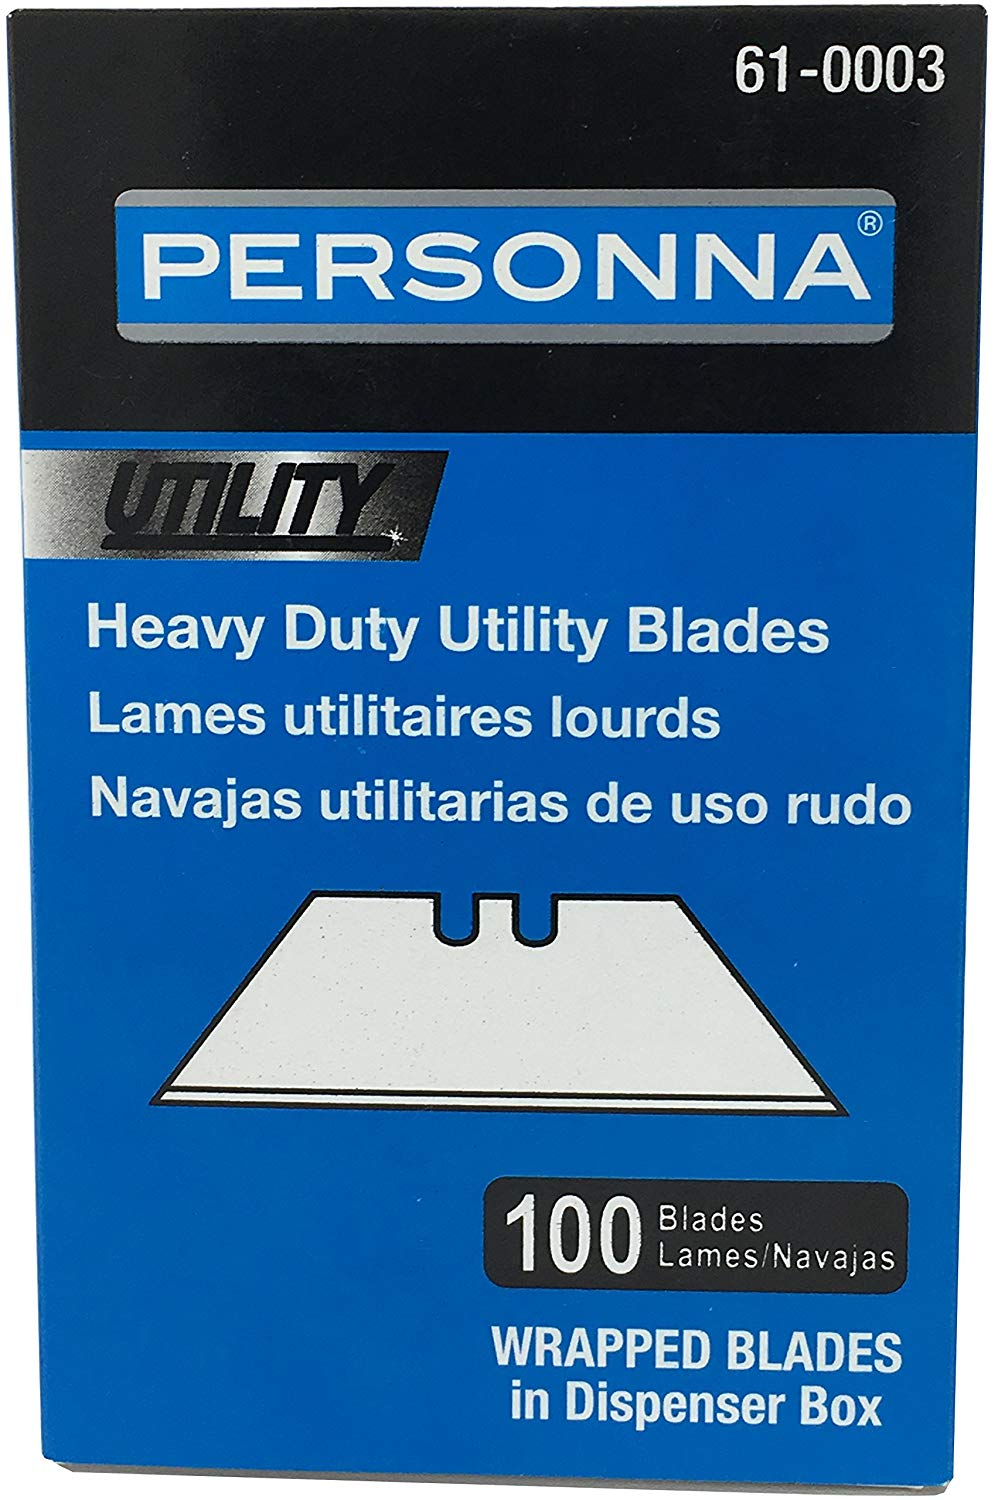 Heavy Duty Utility Blades - Accutec Utility Blades -(100 PACK) - Replacement Personna Double Edge Razor Blades - Box Cutter Blades, Drywall Blades, Floor Blades, Roofing Blades, General Purpose, etc.